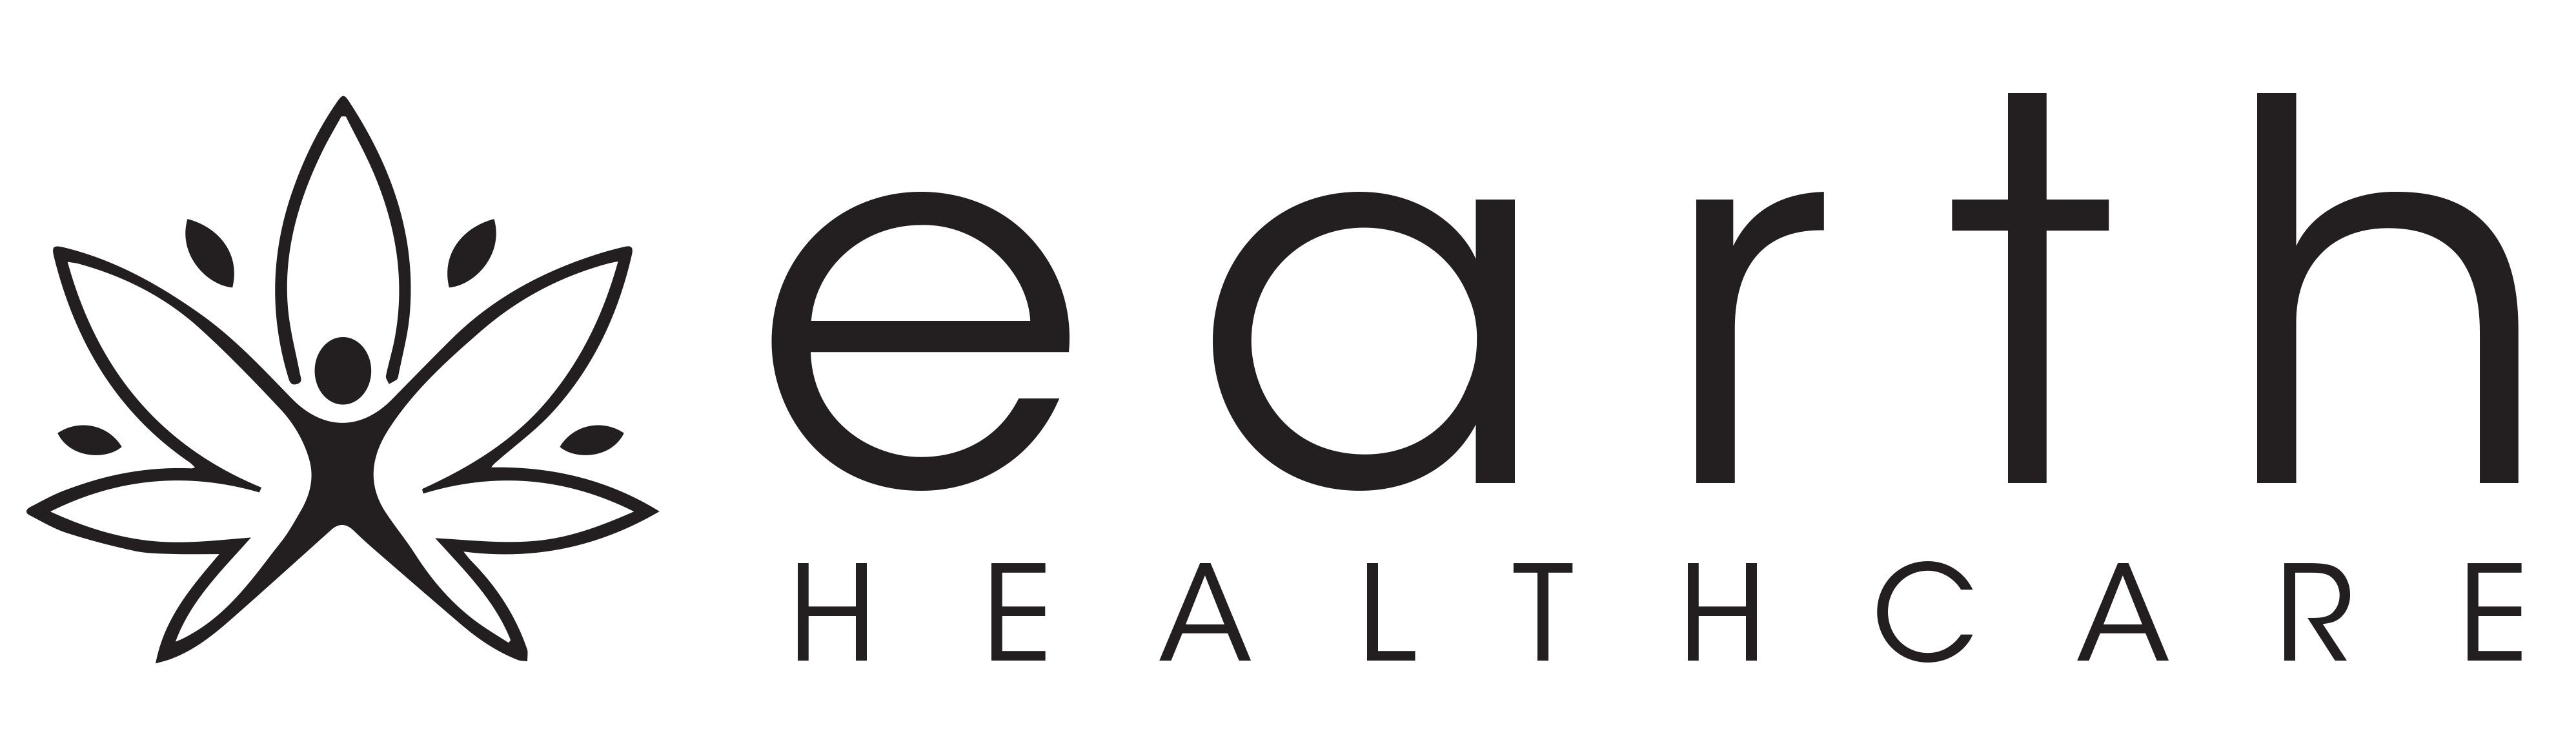 Earth Healthcare Logo